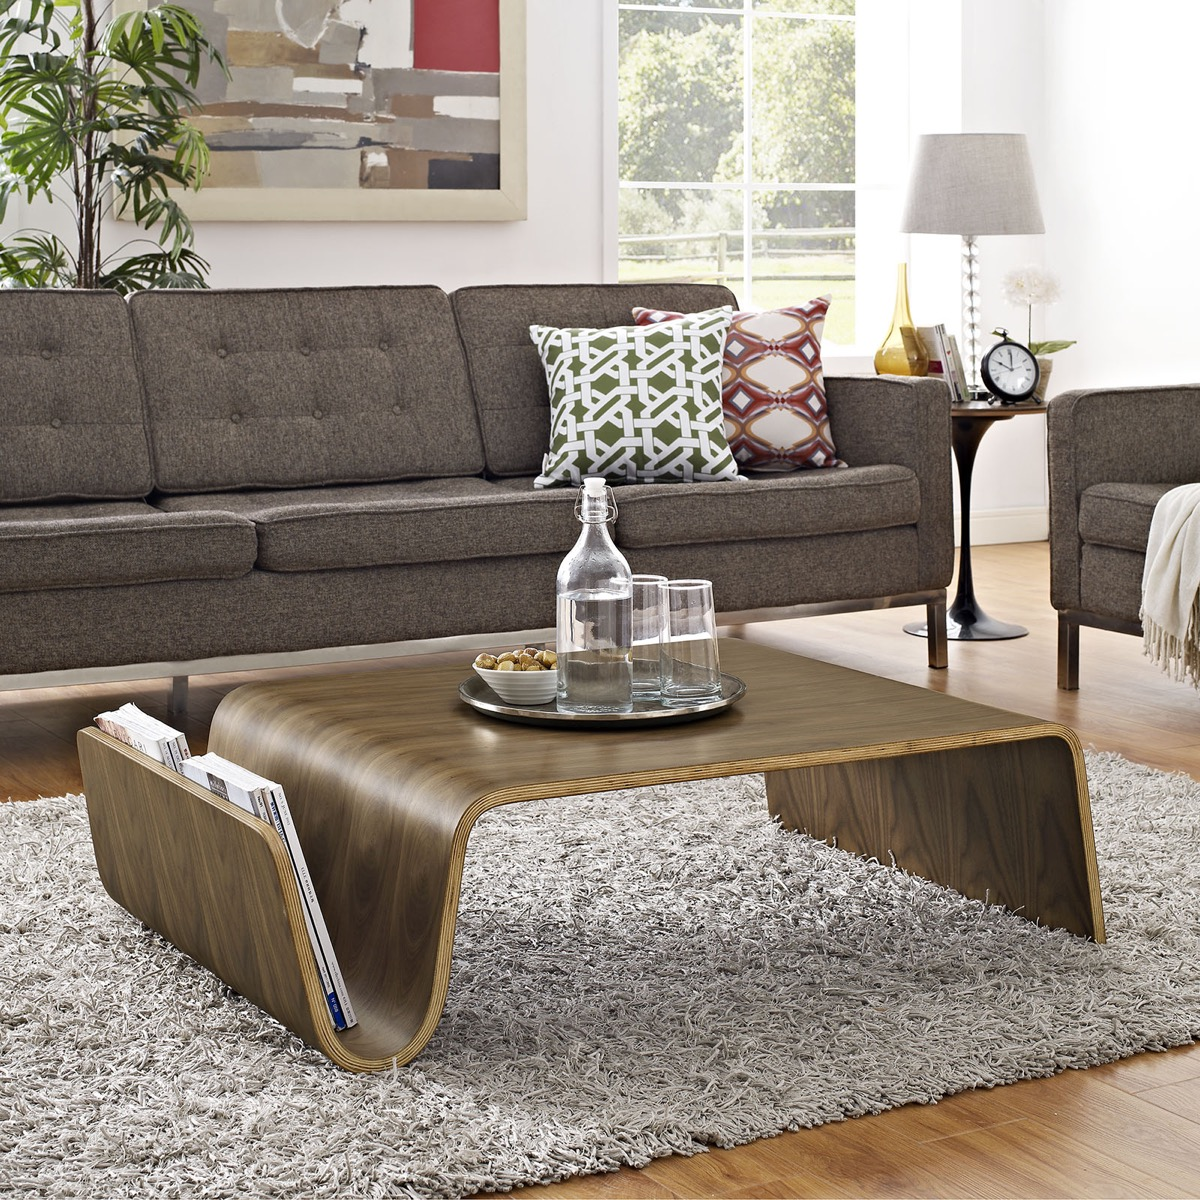 Coffee-Table-With-Magazine-Rack-Mid-Century-Modern-Walnut-Finish-Low-Furniture